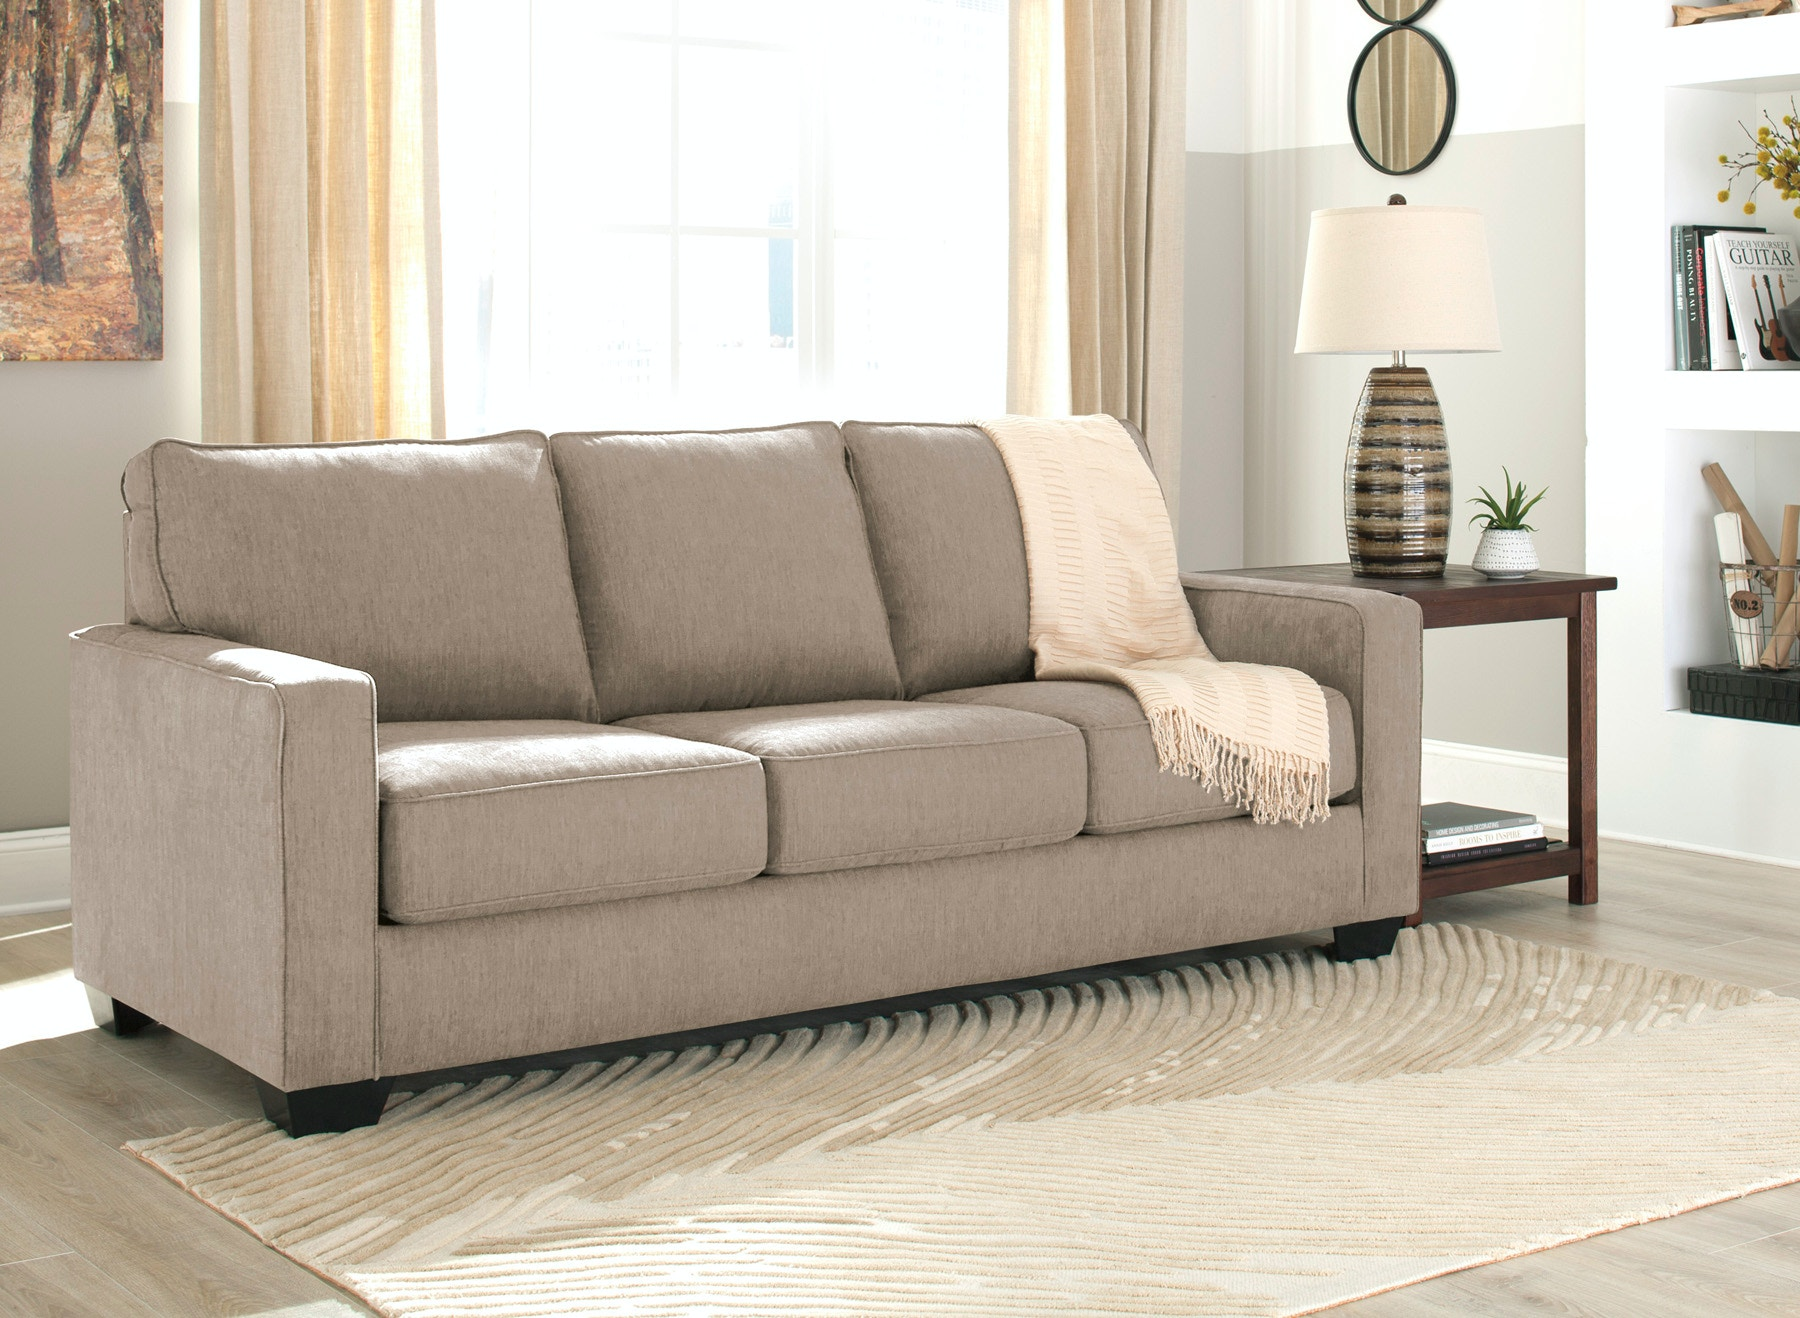 Signature Design By Ashley Zeb Queen Sleeper Sofa 052308